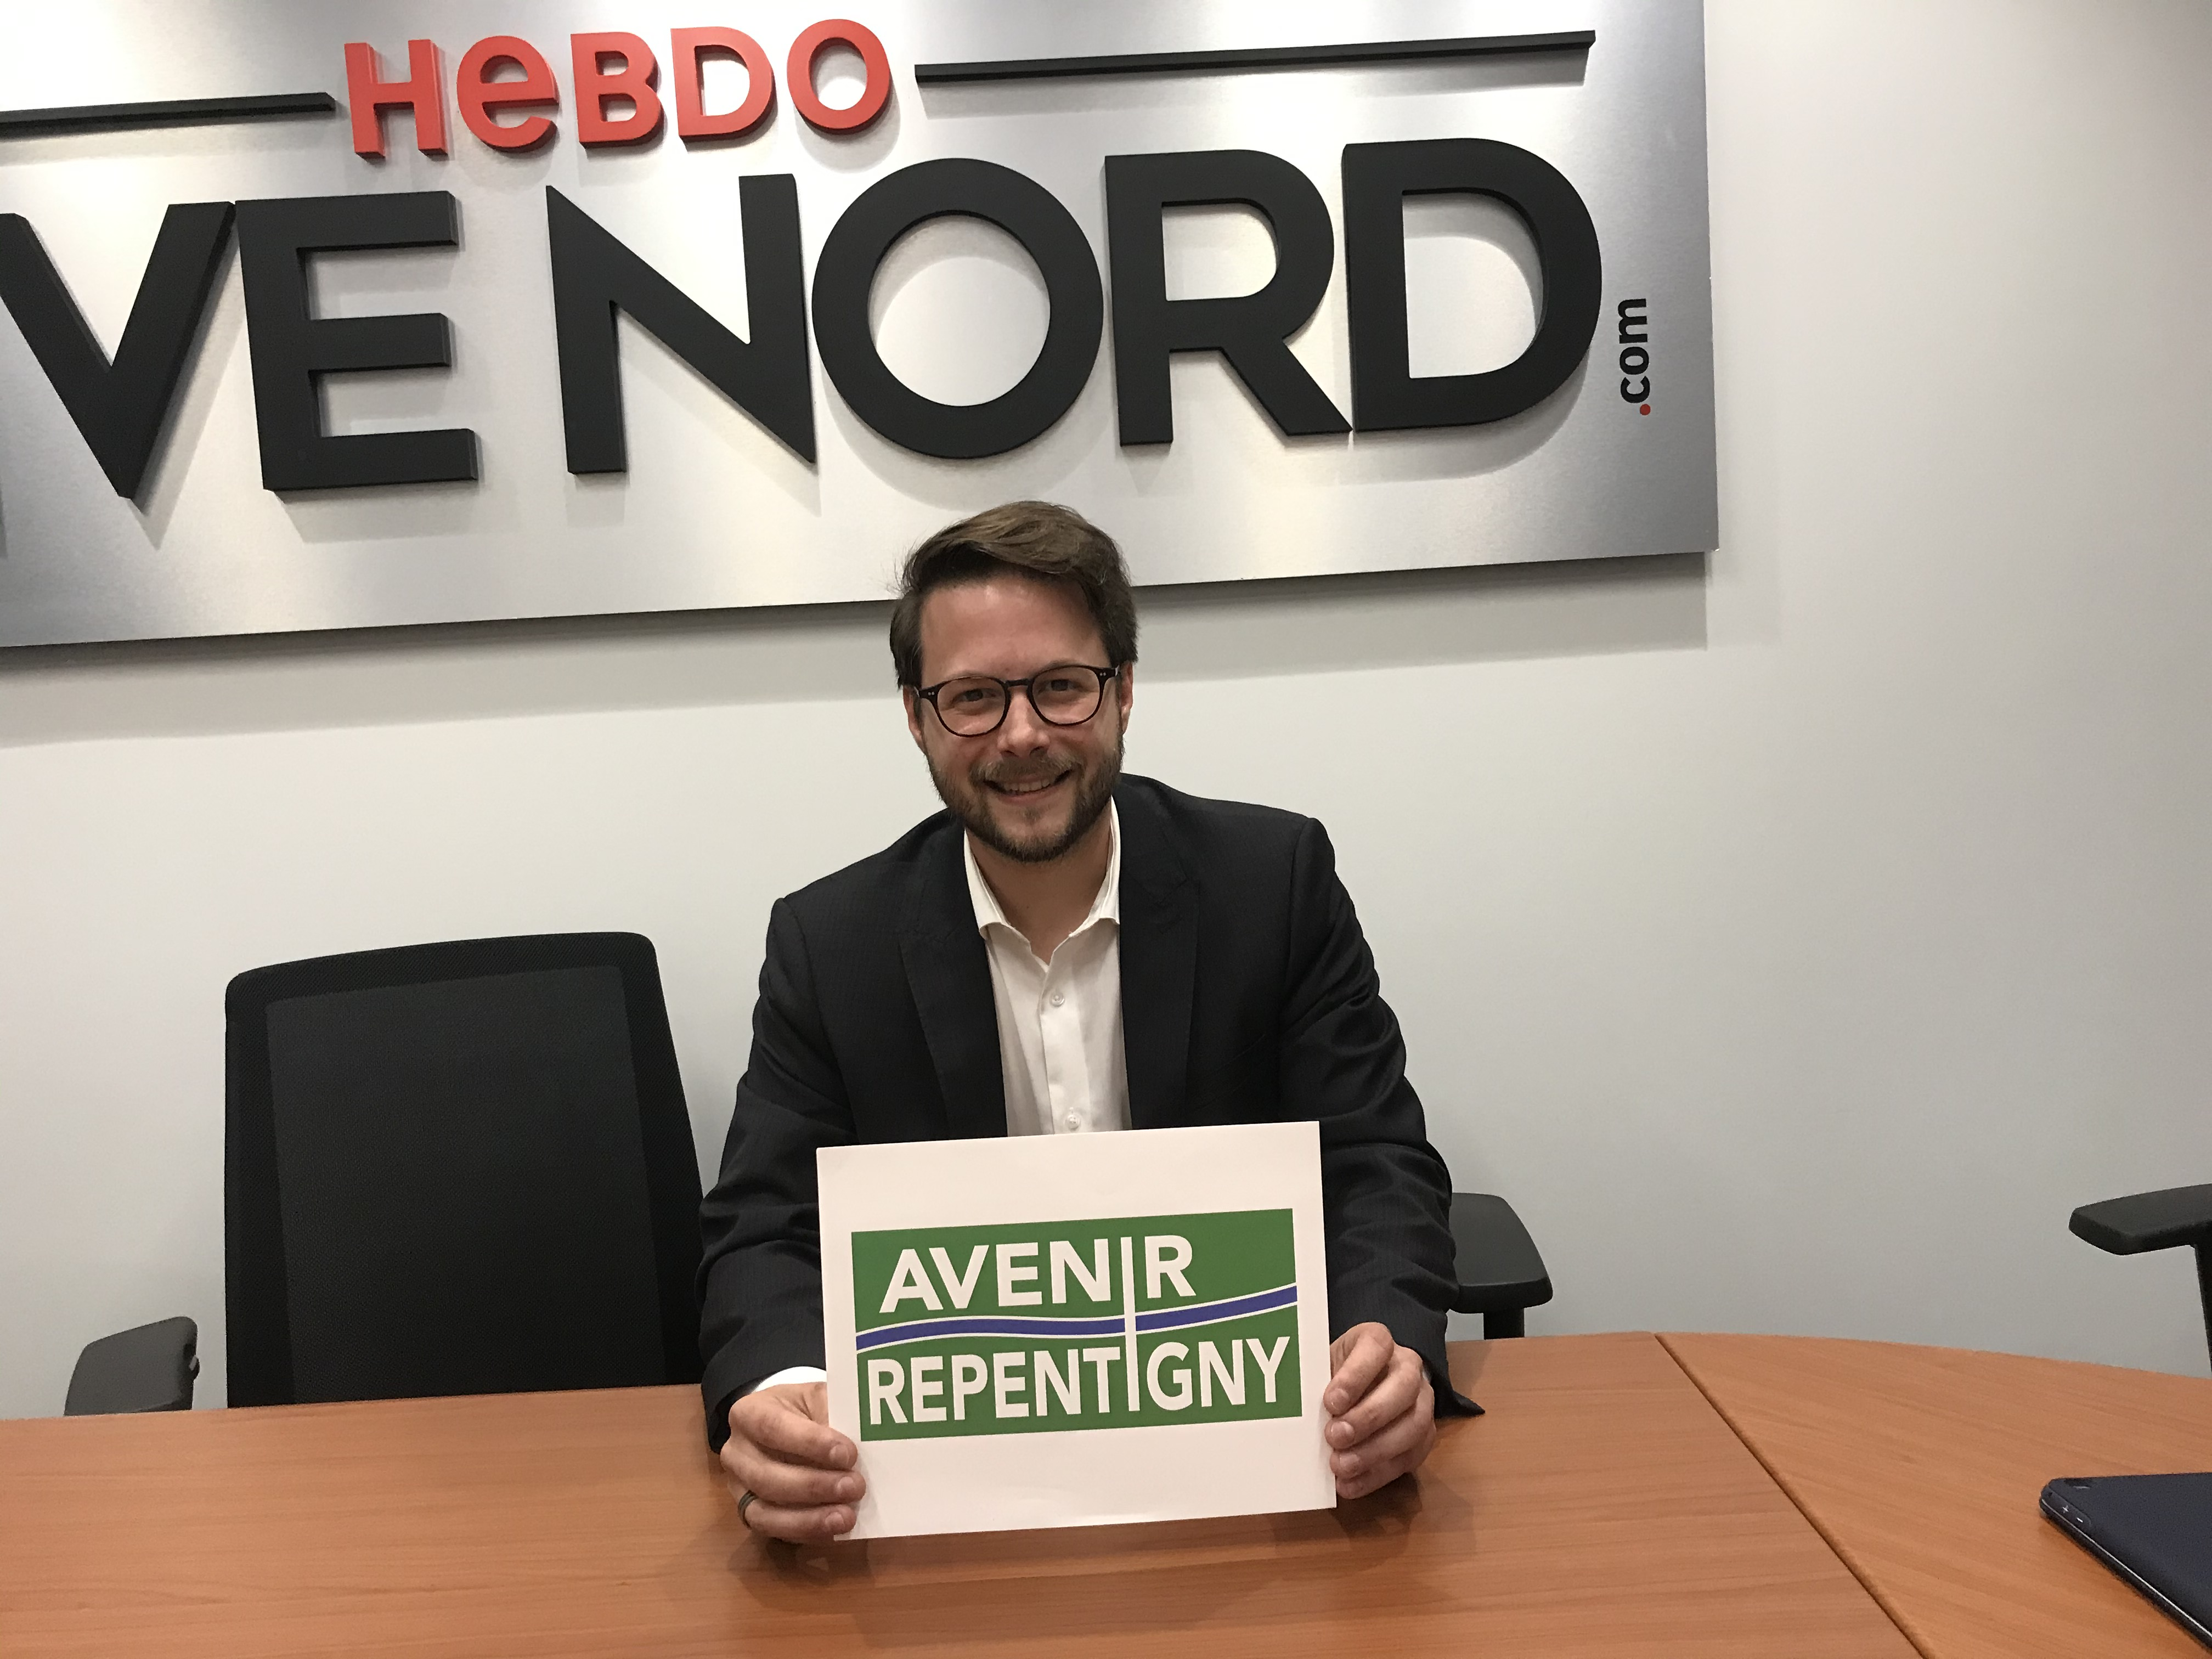 Avenir Repentigny proposes a region to conclude the cycle lanes